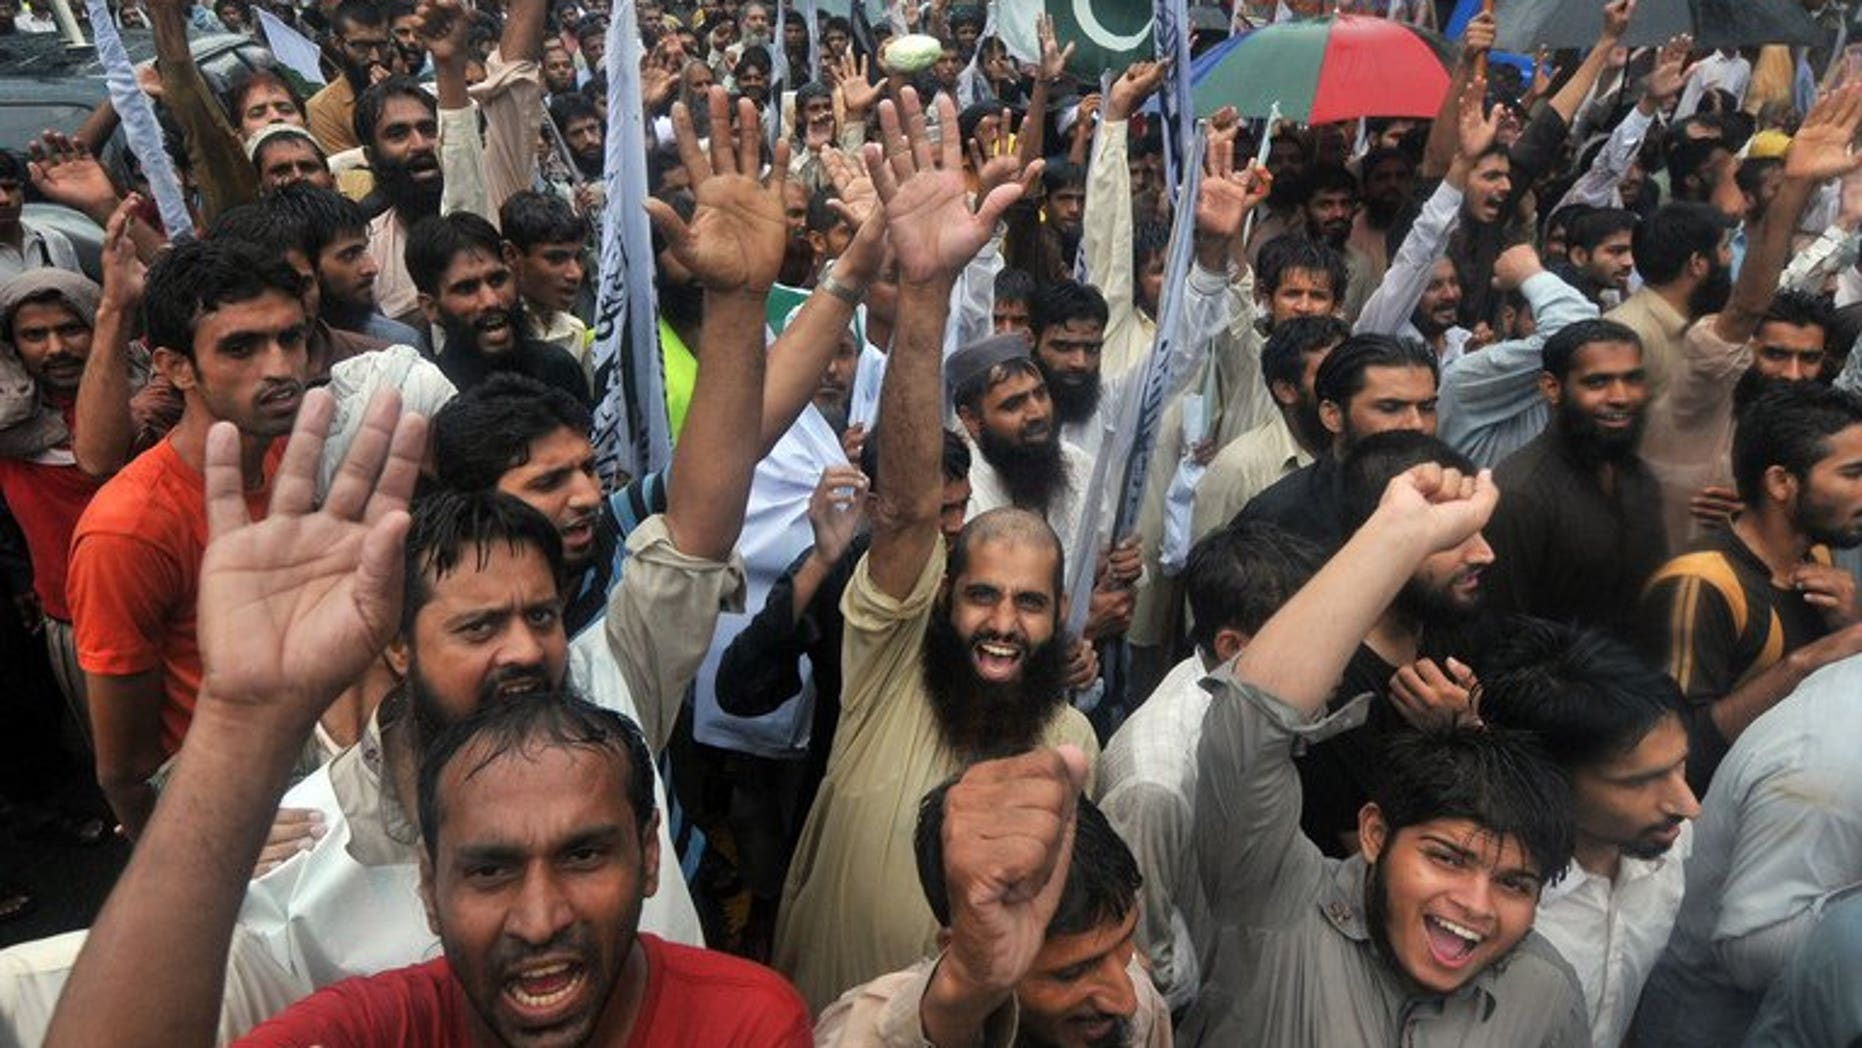 Supporters of Pakistan's outlawed Islamic hardline group Jamaat ud Dawa shout slogans during an anti-Indian protest rally in Lahore on August 14, 2013. Pakistan accused Indian troops Thursday of killing a soldier in disputed Kashmir, the latest in a series of reported clashes which have raised tensions between the nuclear-armed neighbours.